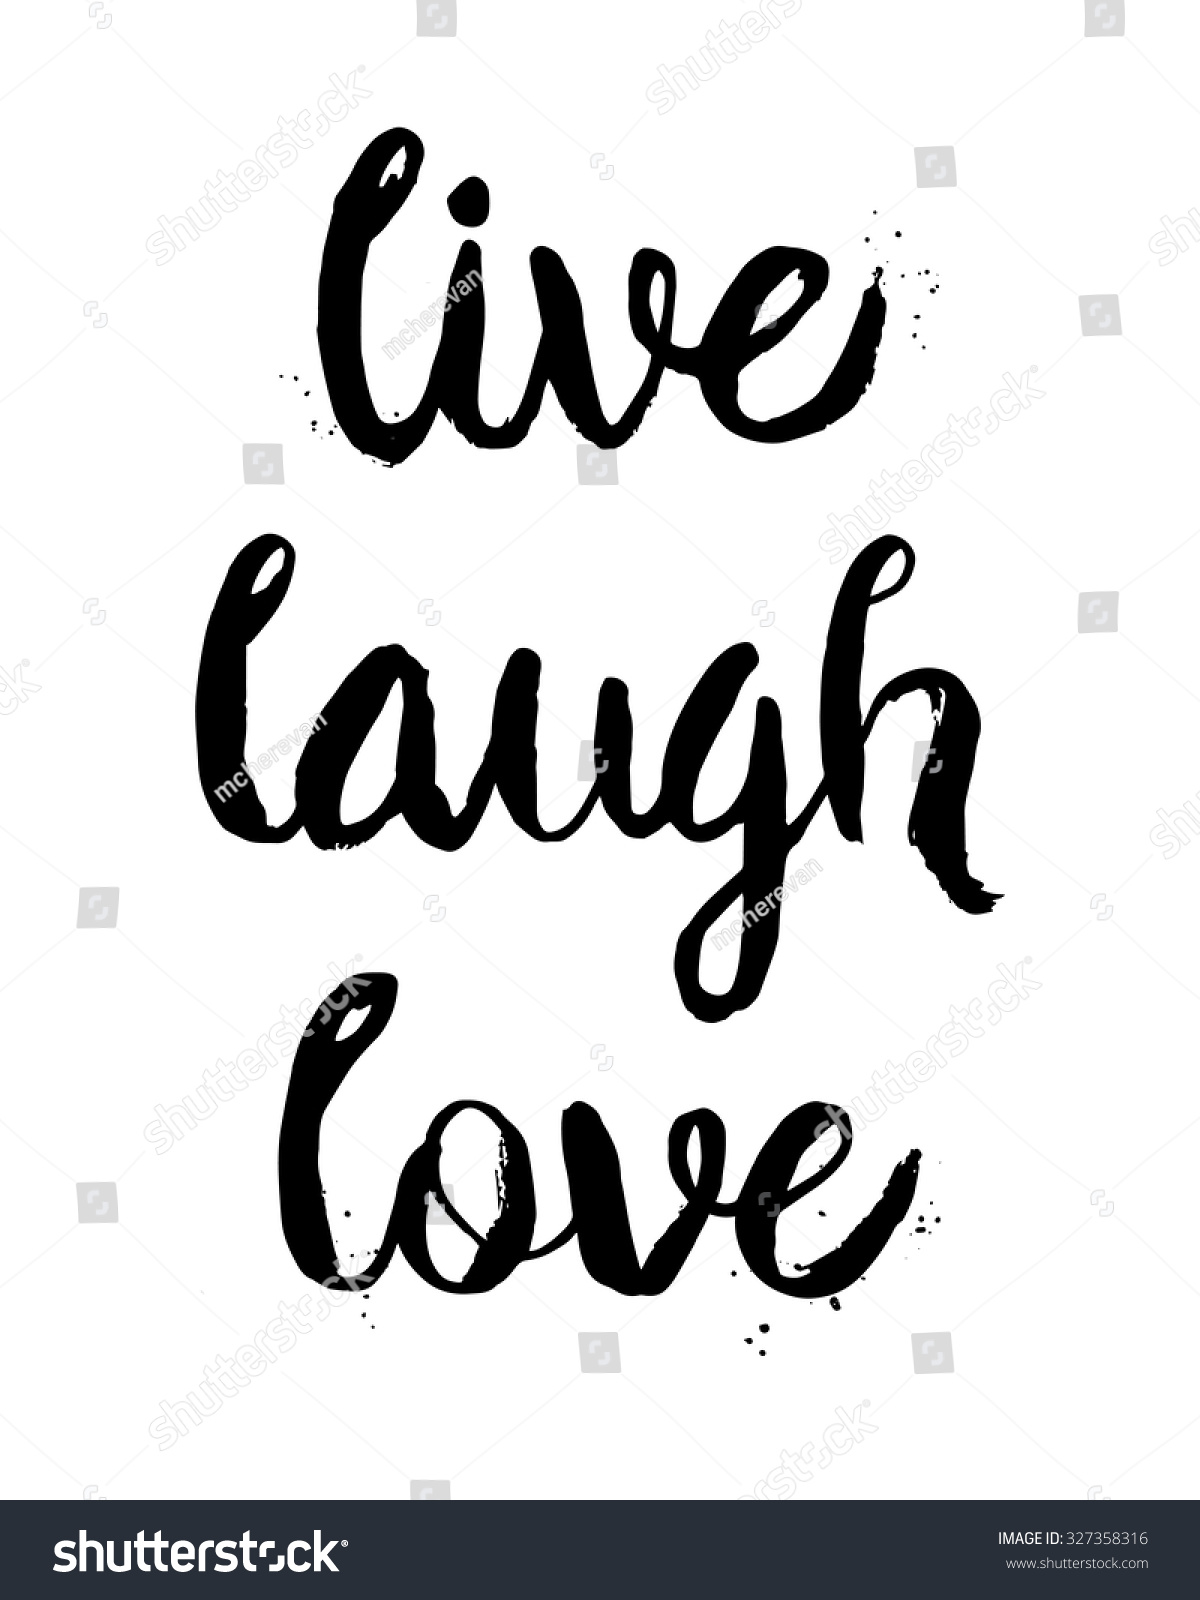 laughter word art - photo #27